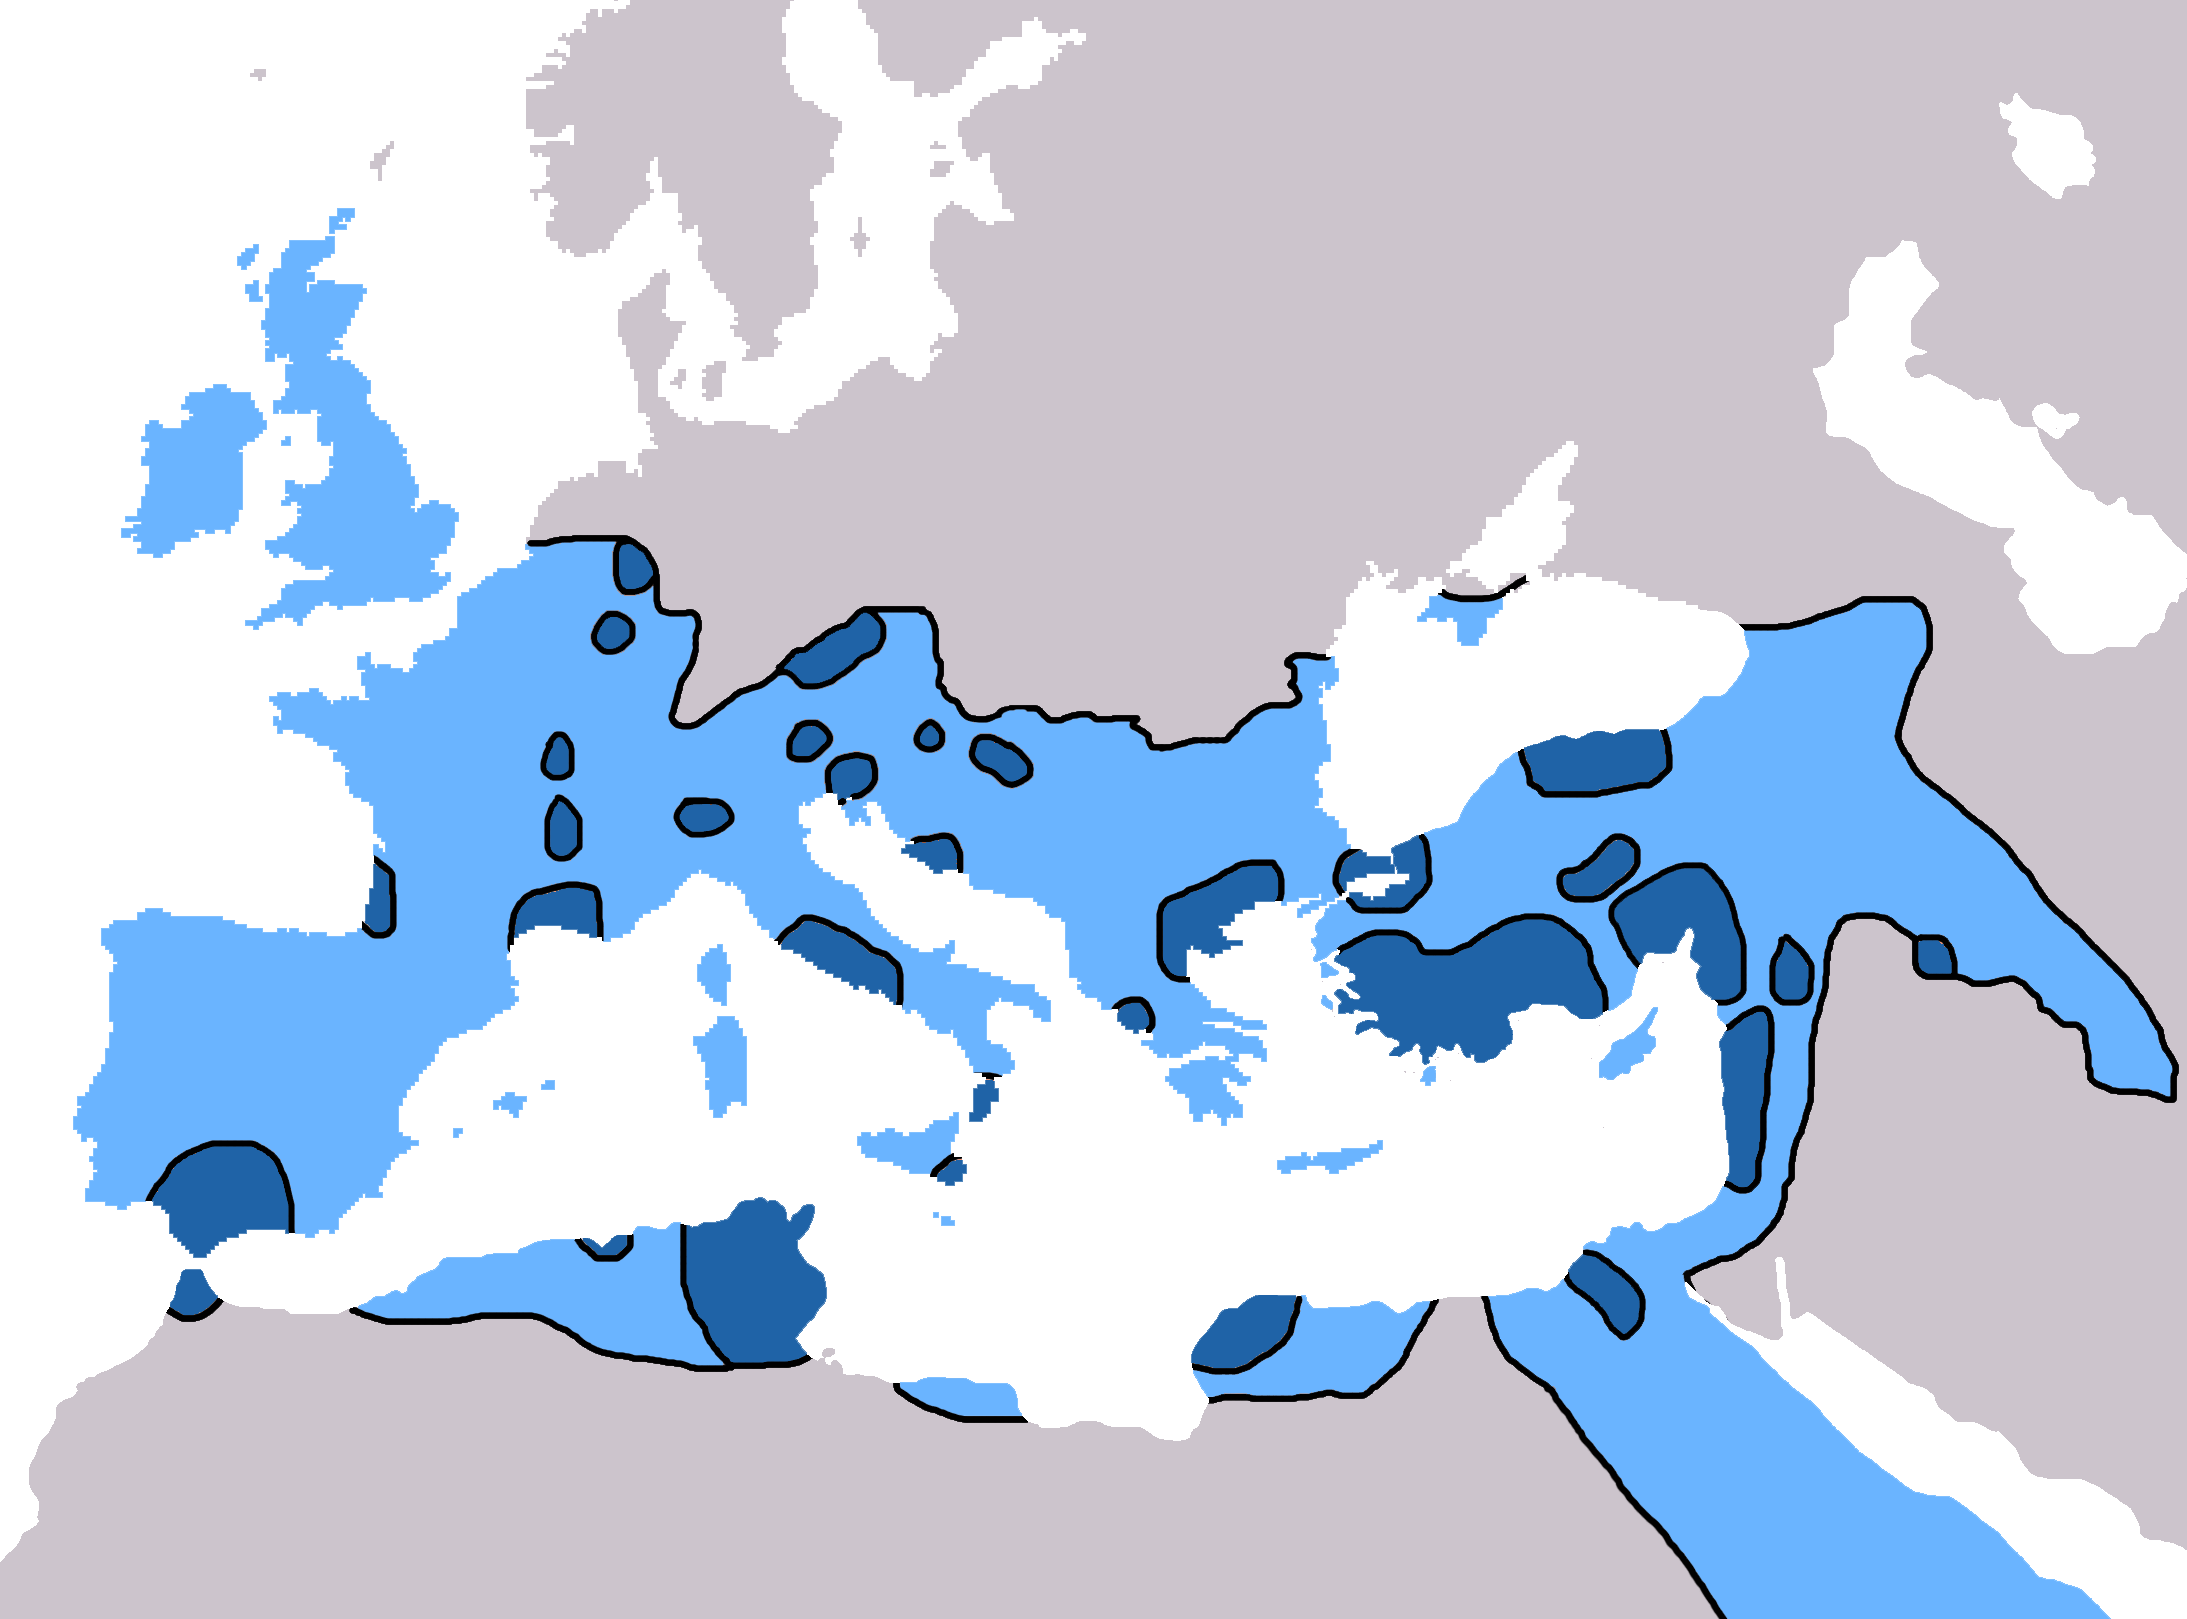 Christianity in the 4th century - Wikipedia